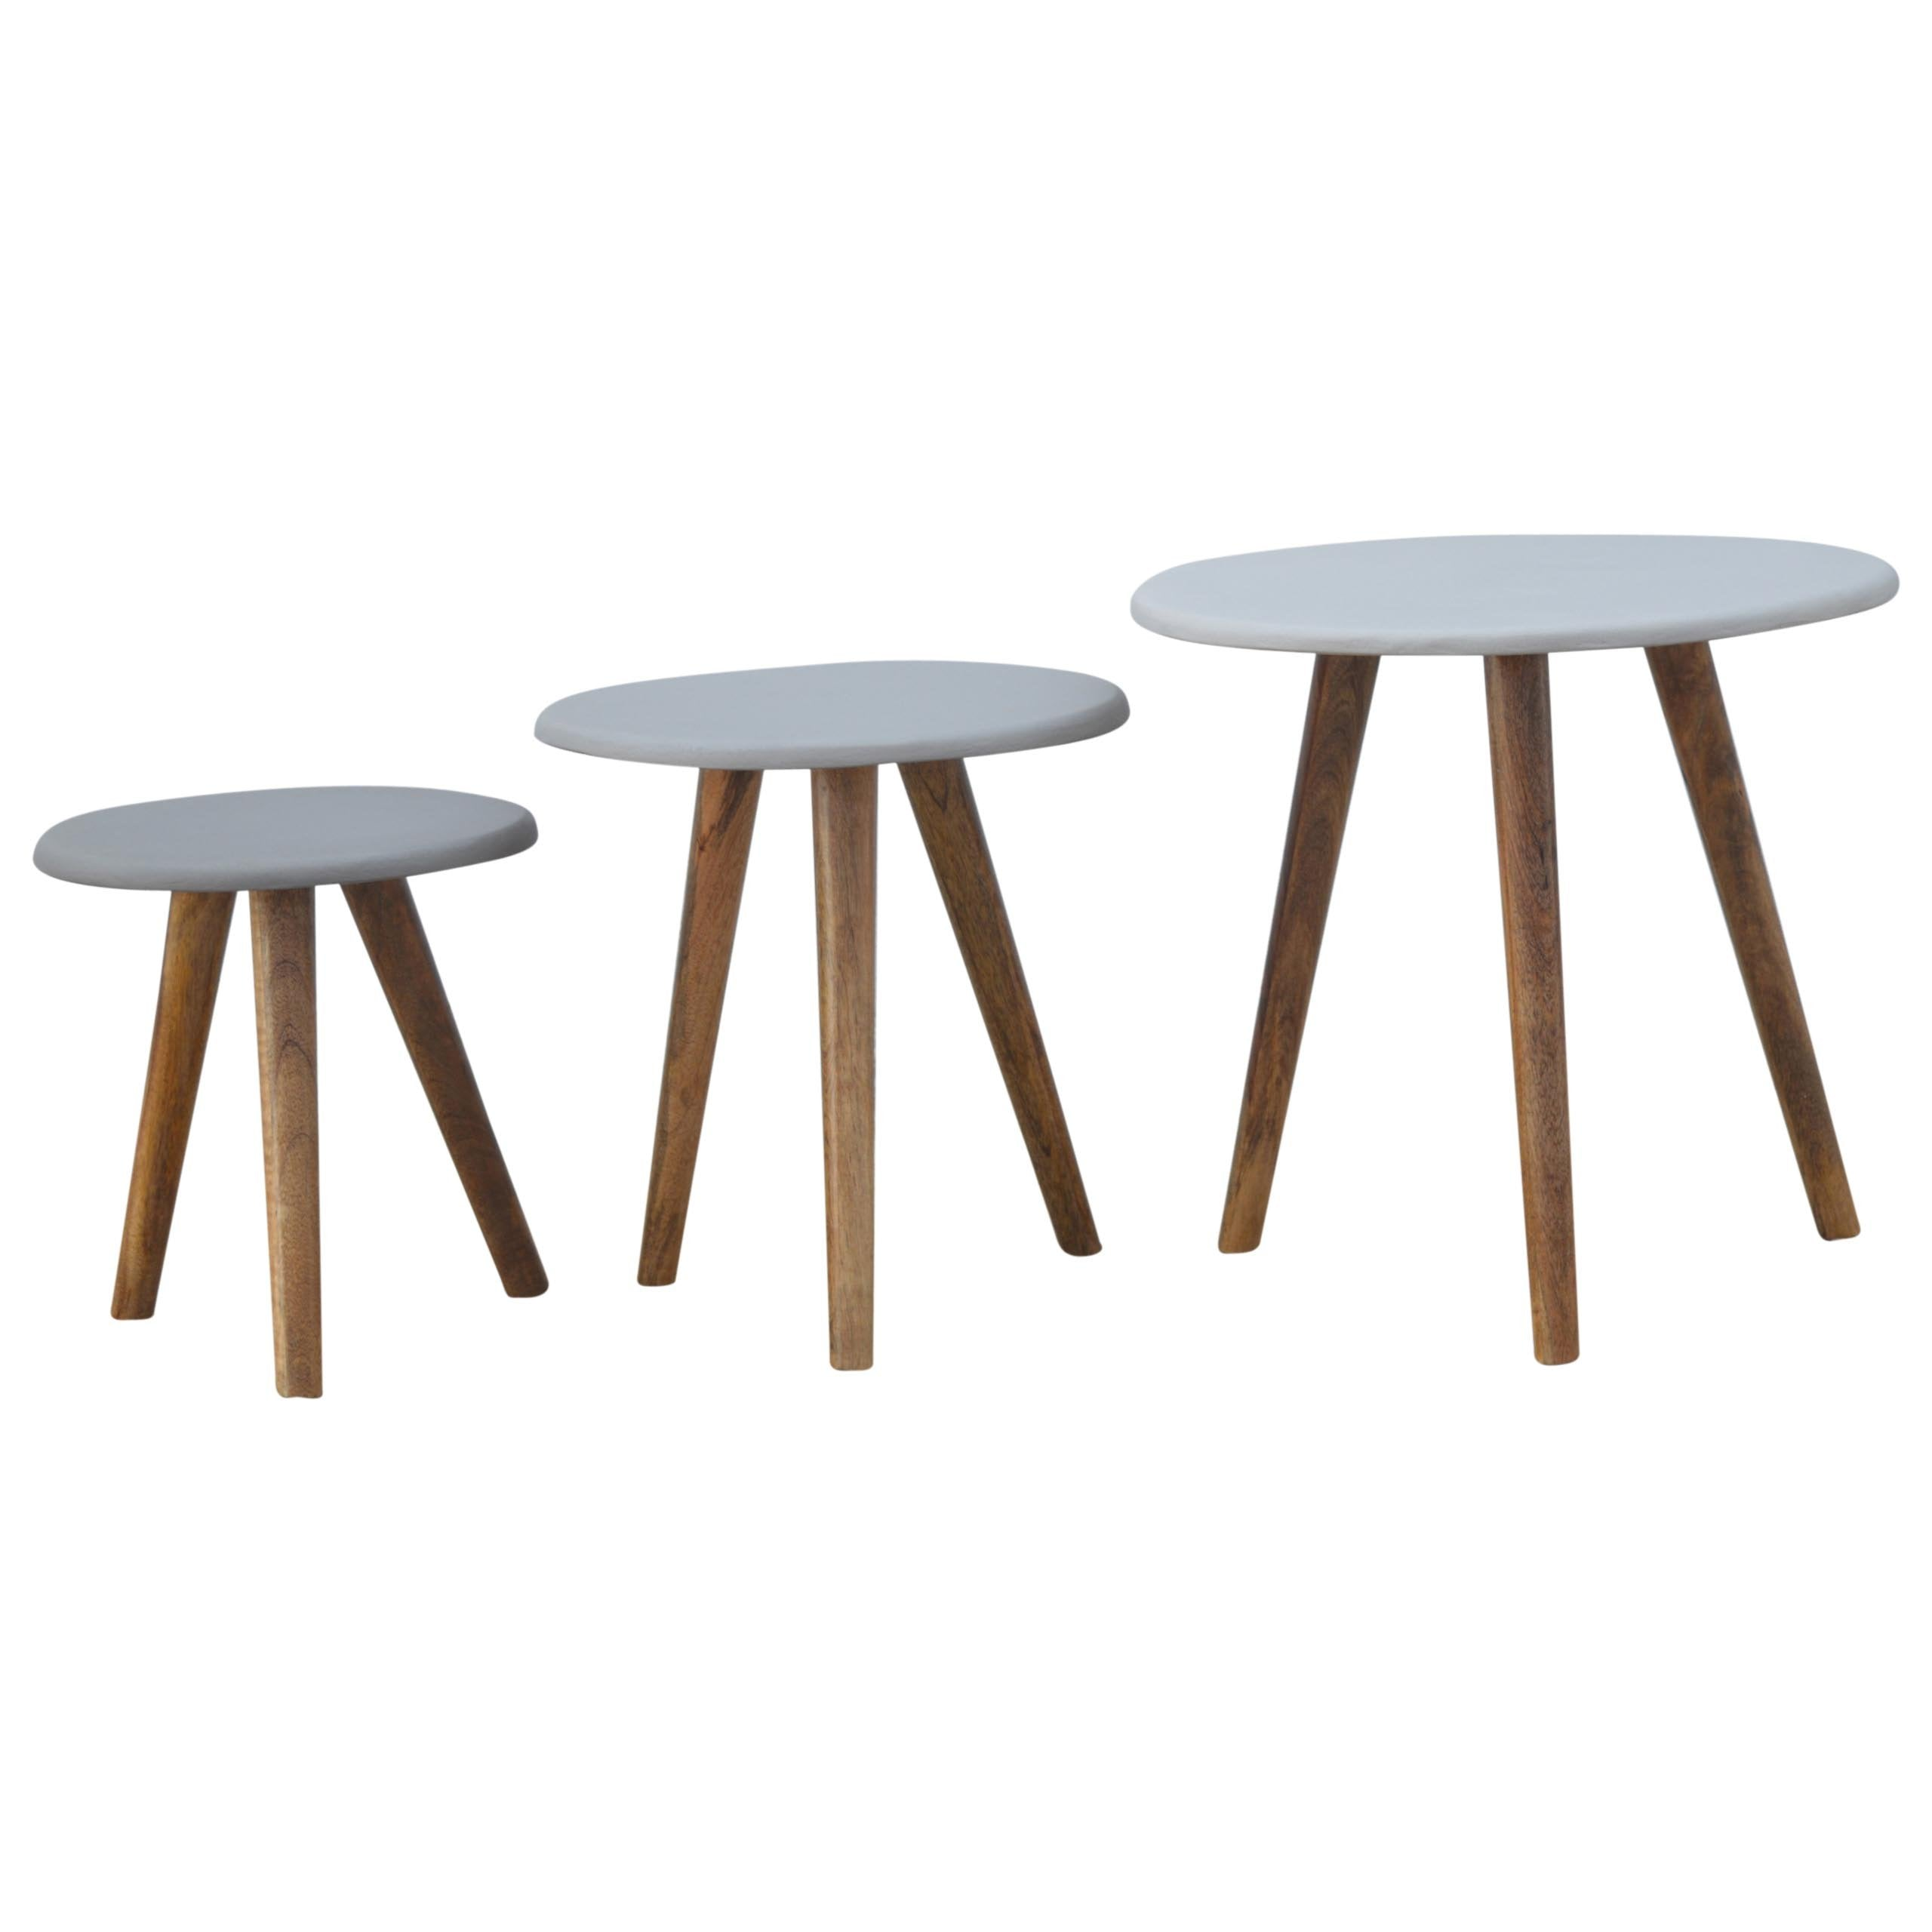 Grey Painted Stool Set of 3